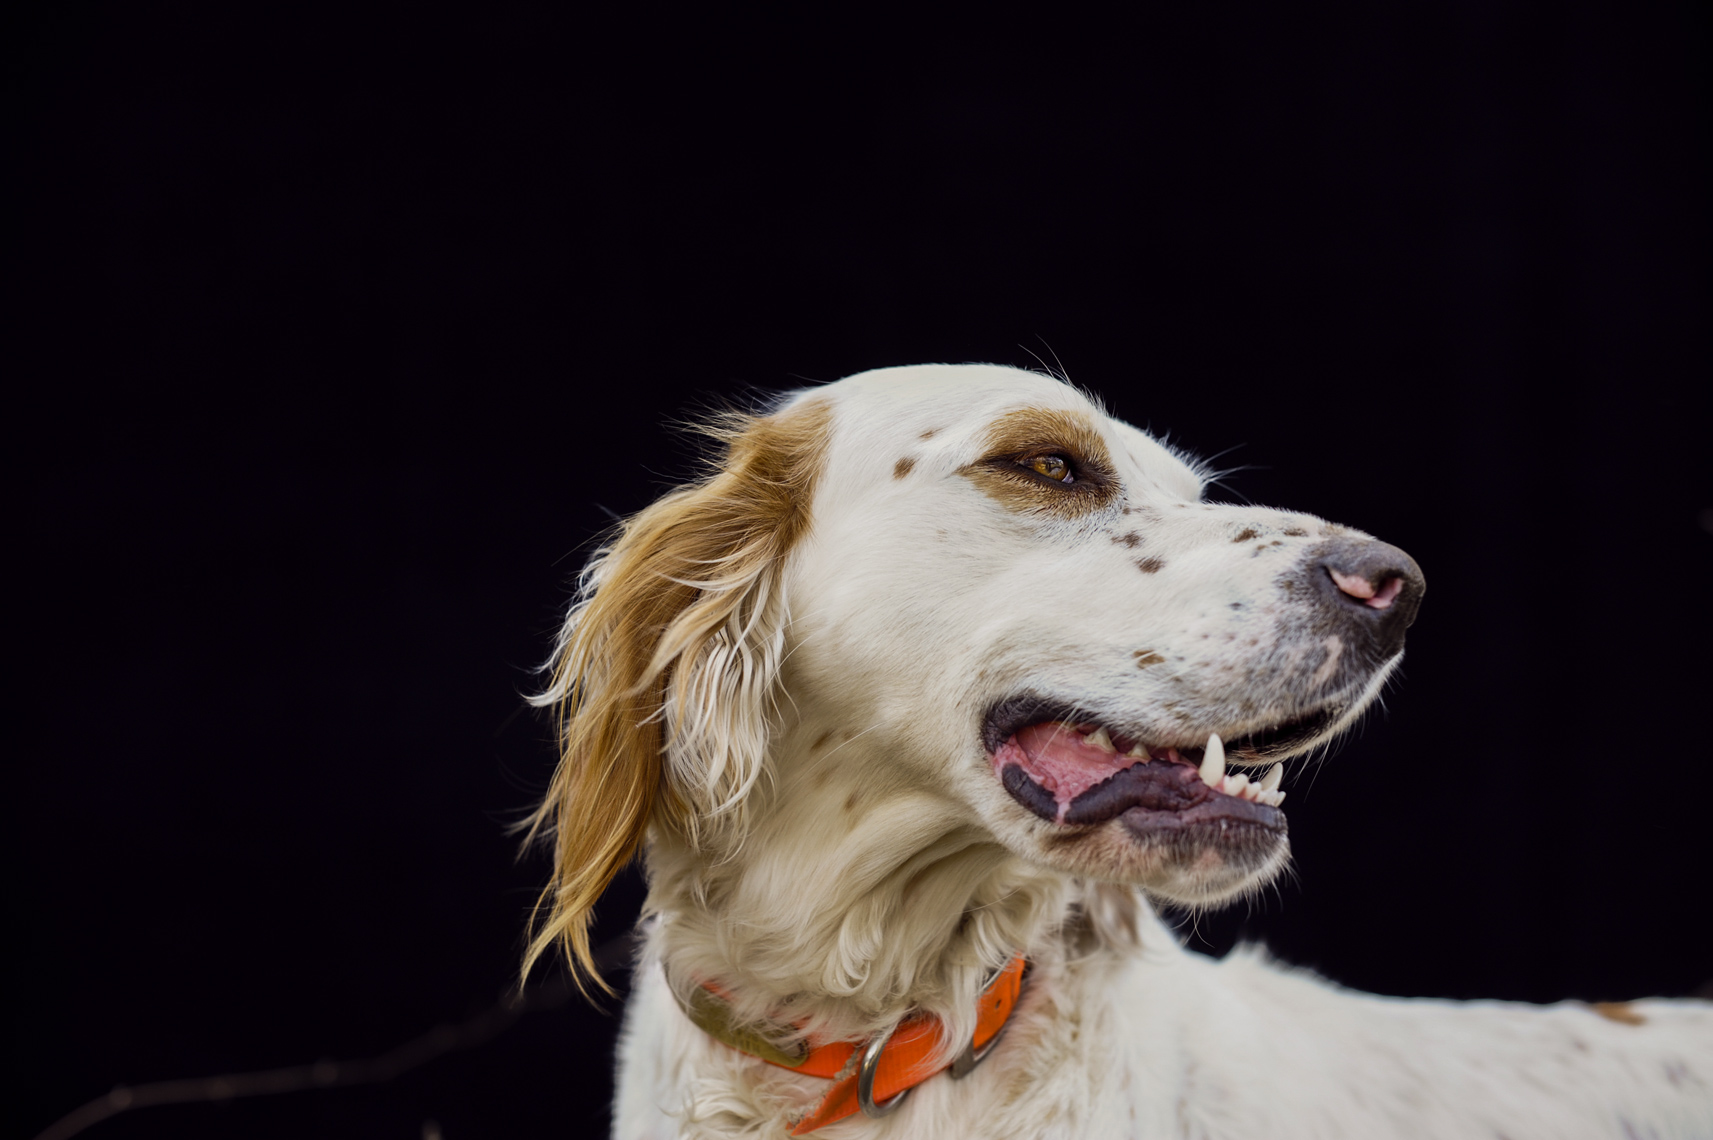 ©Robb Scharetg - Bird Dog portrait